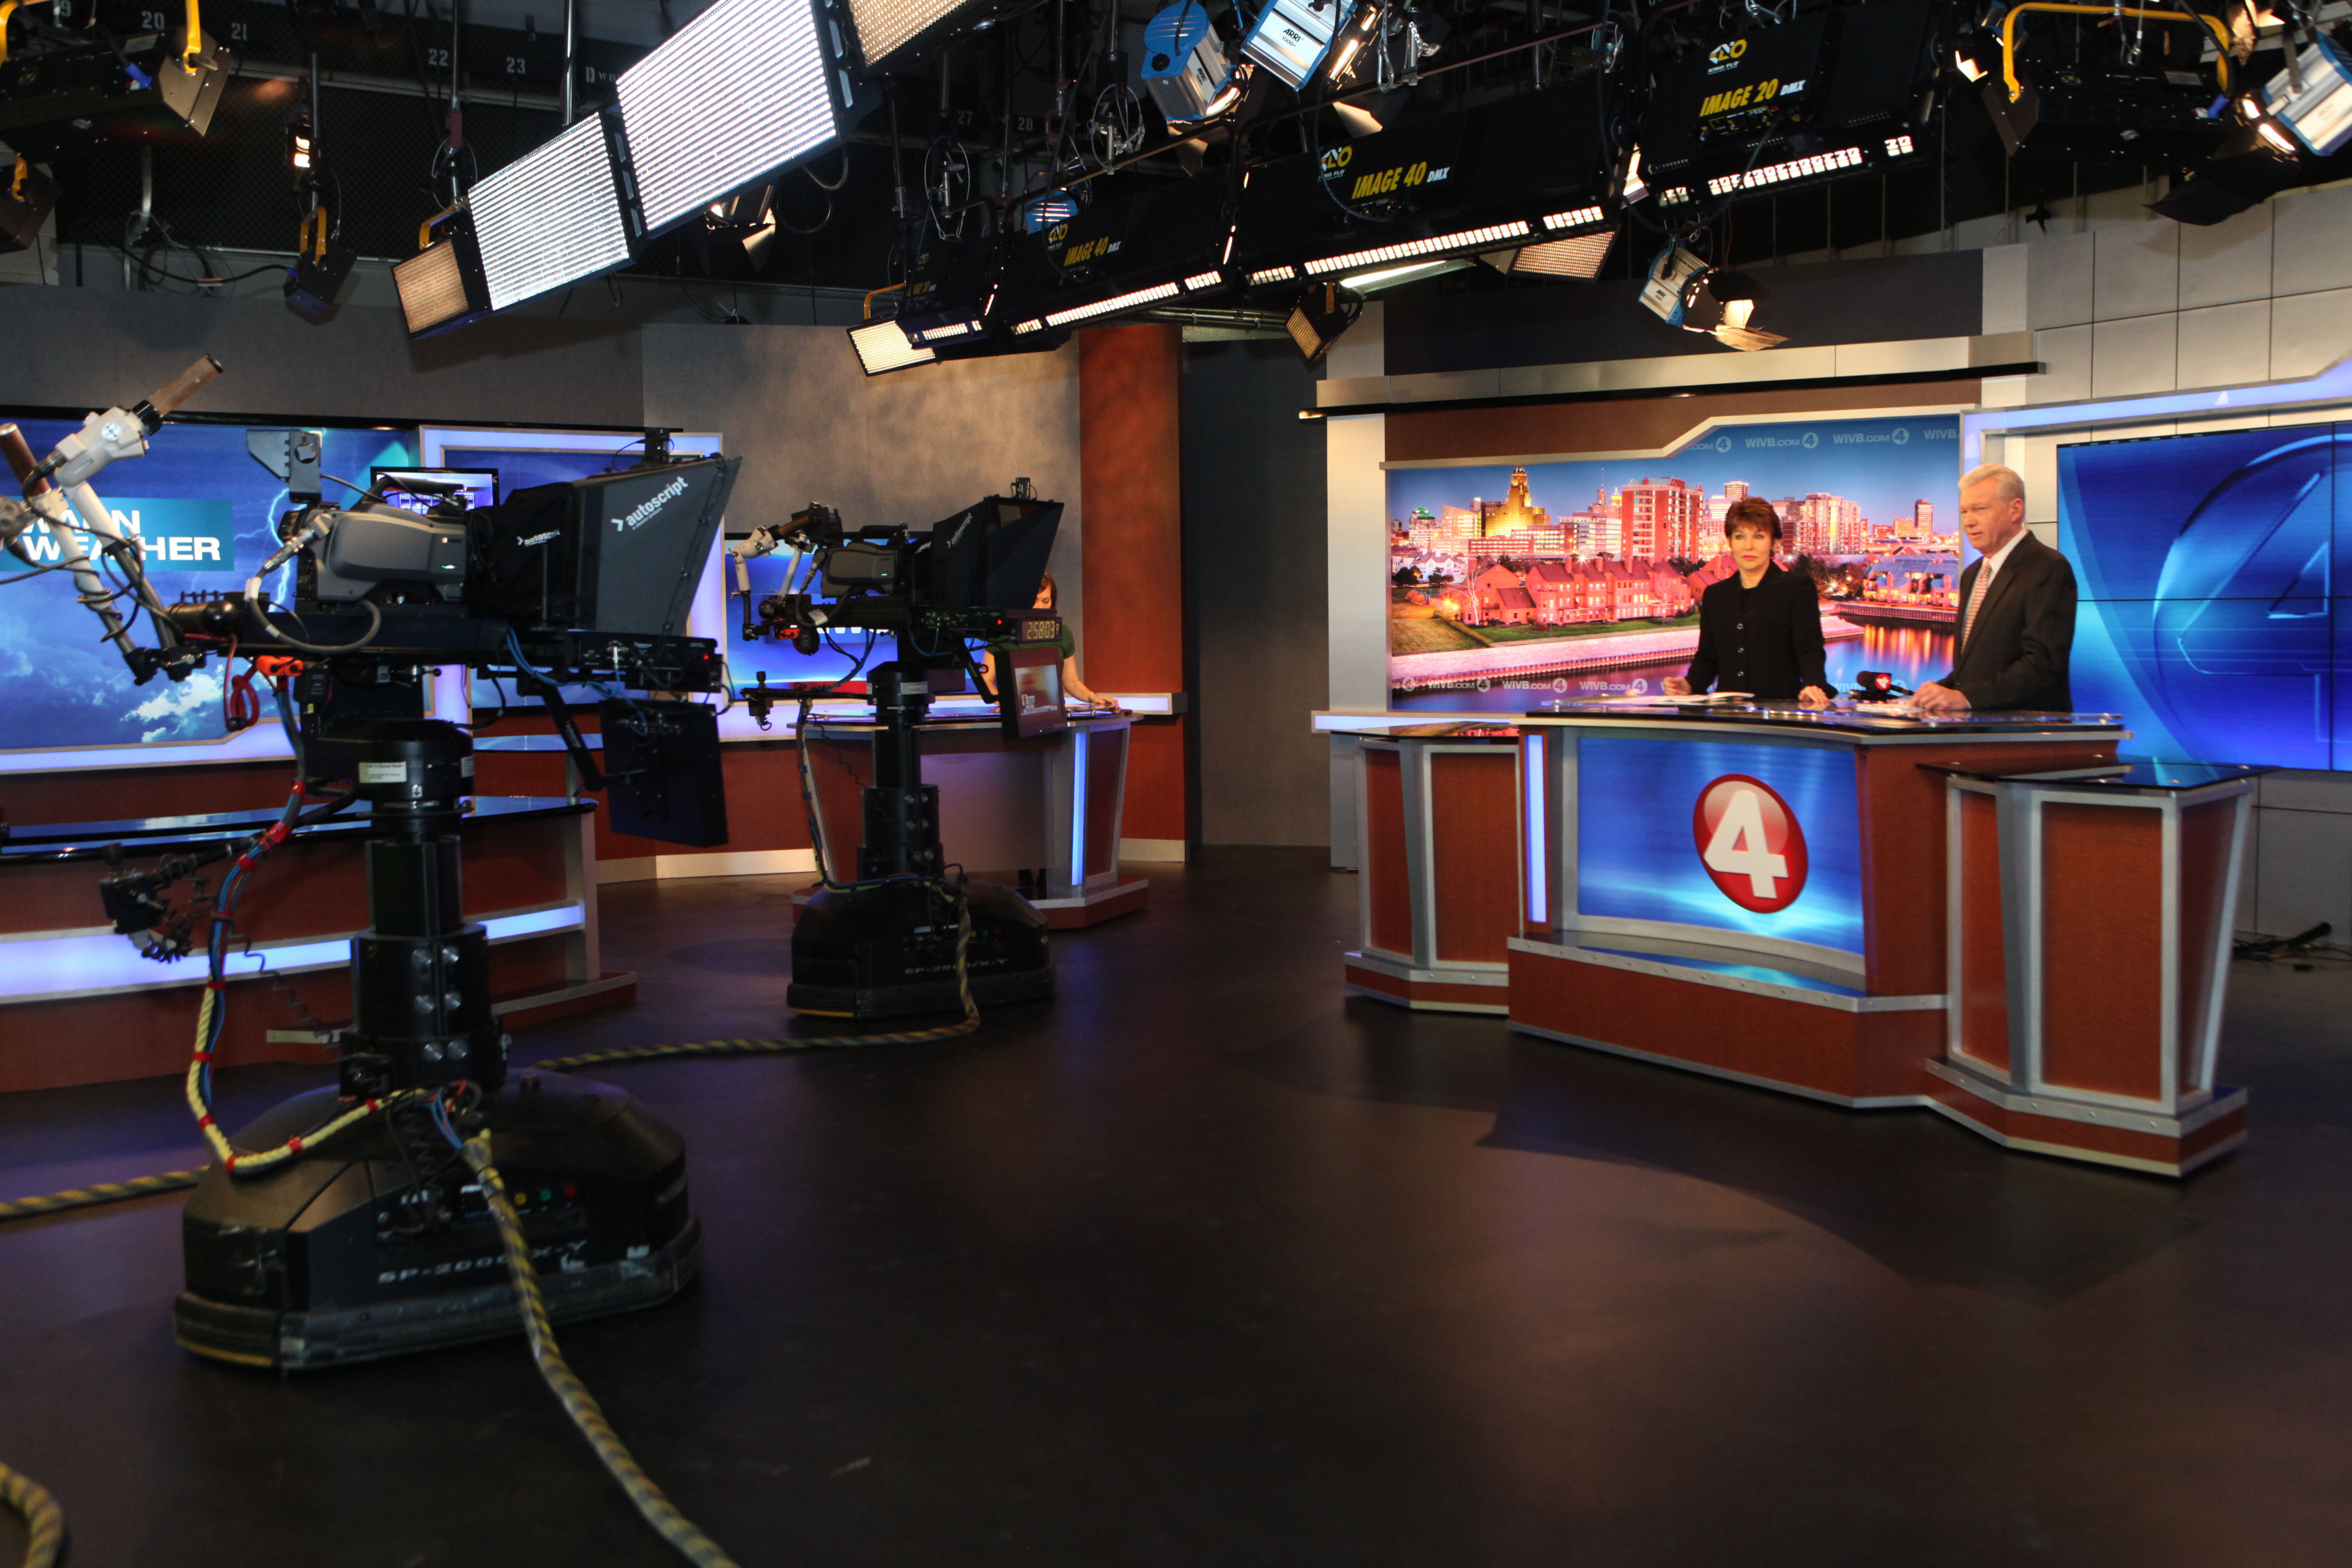 Alan Pergament: Ch  4's WNLO newscast looks like bad